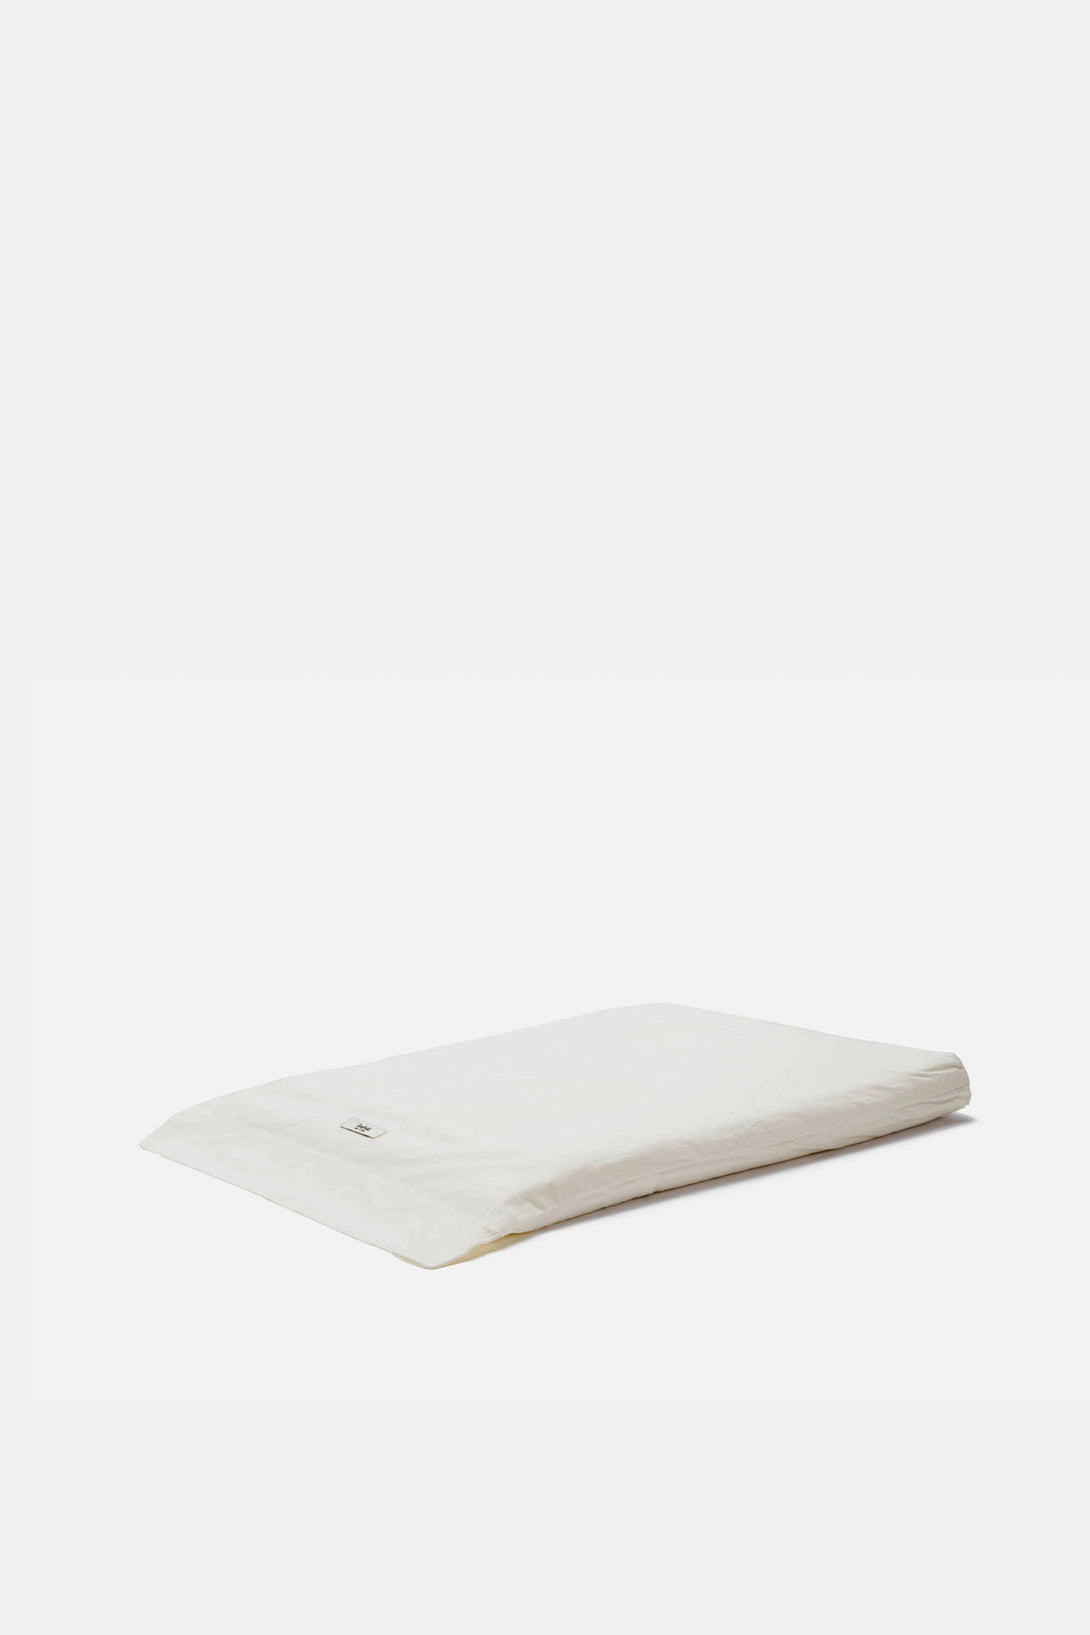 Washed Percale Sheeting - Full/Queen Flat Sheet